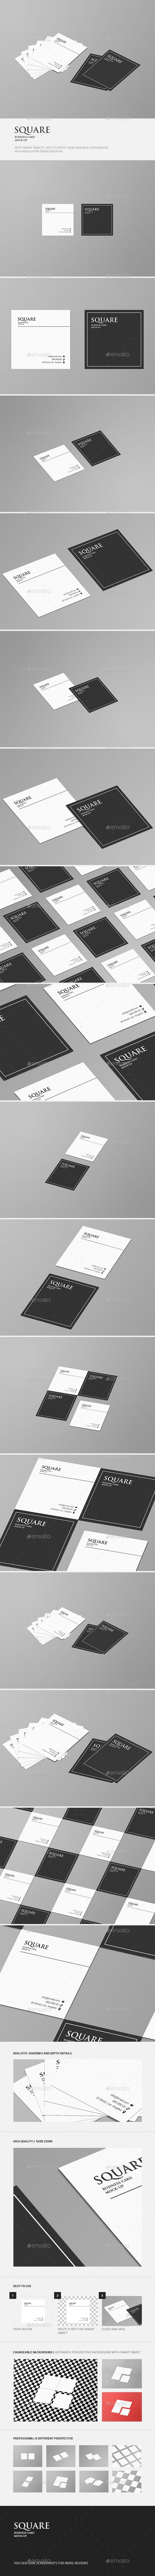 Square Business Card Mock-Up. Download here: http://graphicriver.net/item/square-business-card-mockup/16699214?ref=ksioks